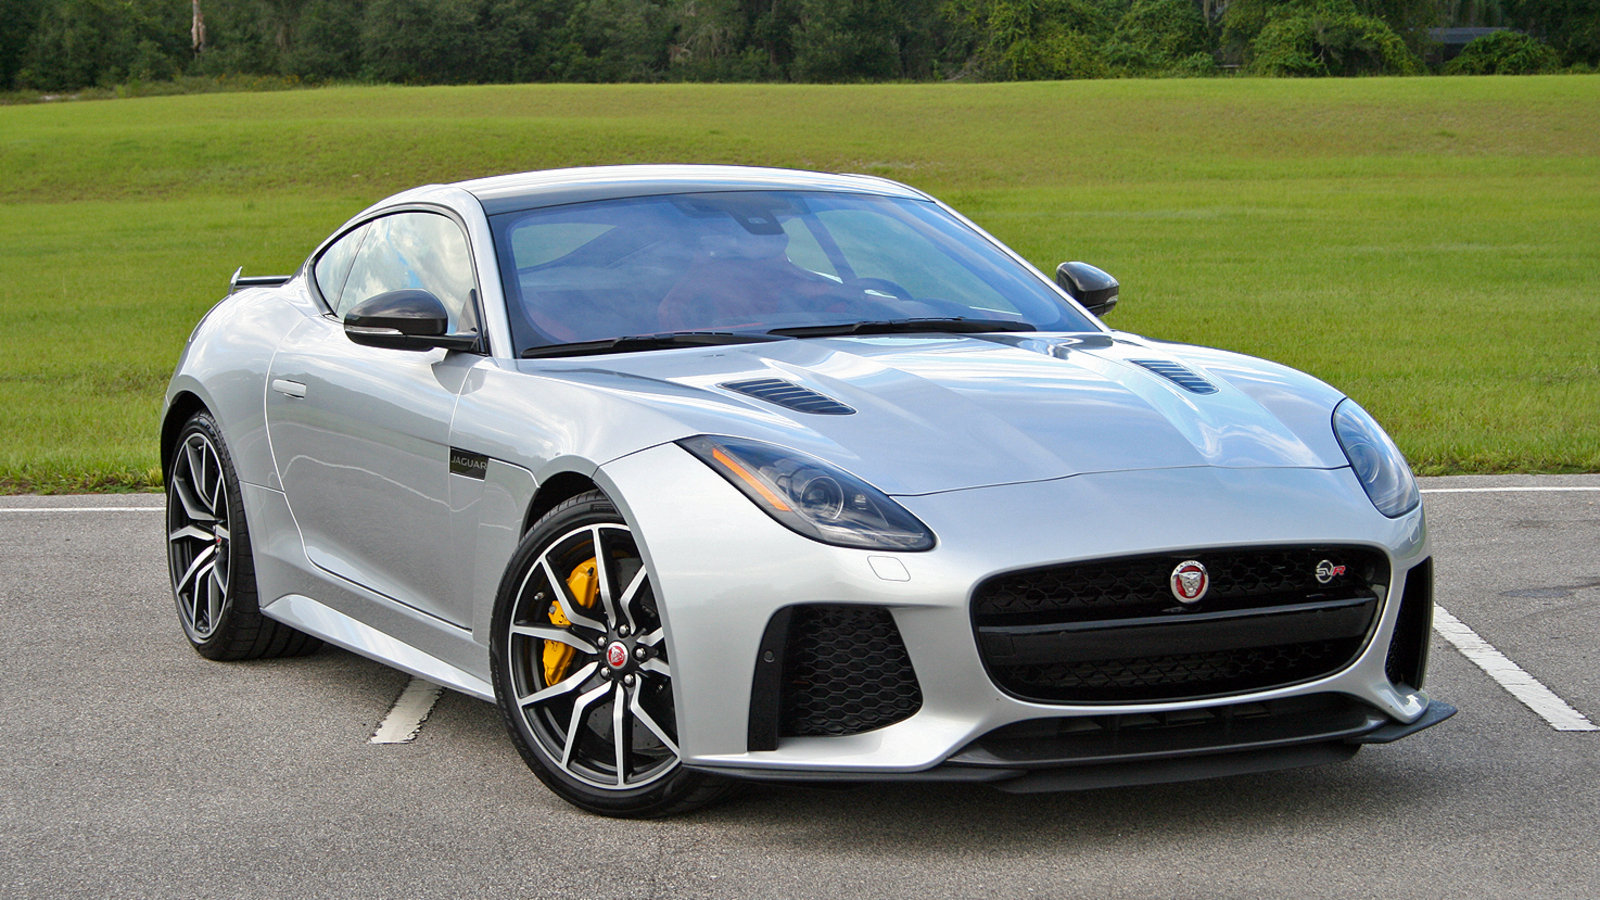 2017 jaguar f type svr driven review top speed. Black Bedroom Furniture Sets. Home Design Ideas